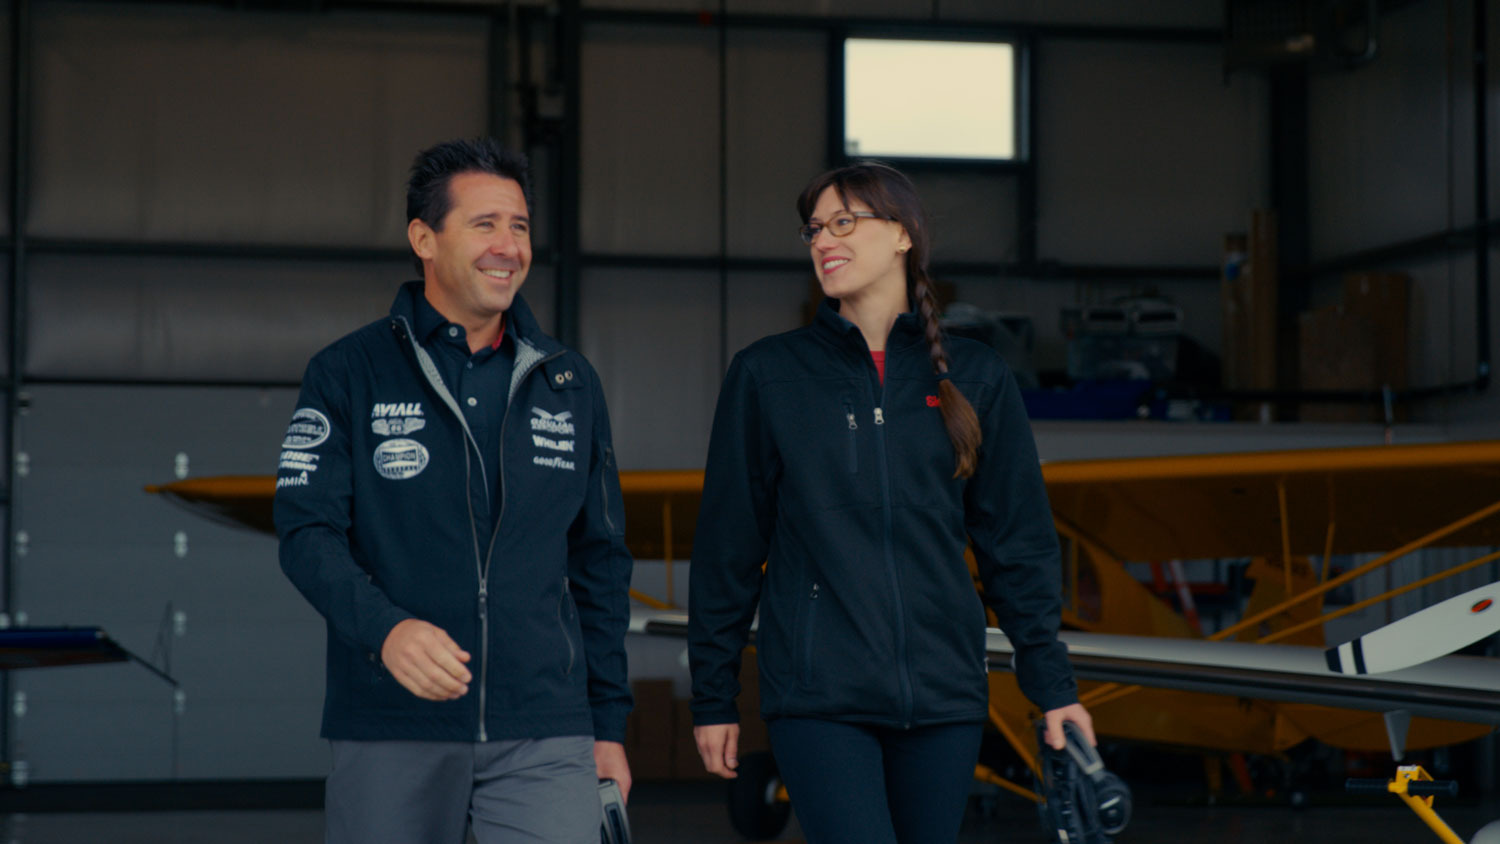 Britt and Mike Goulian walk to airplane